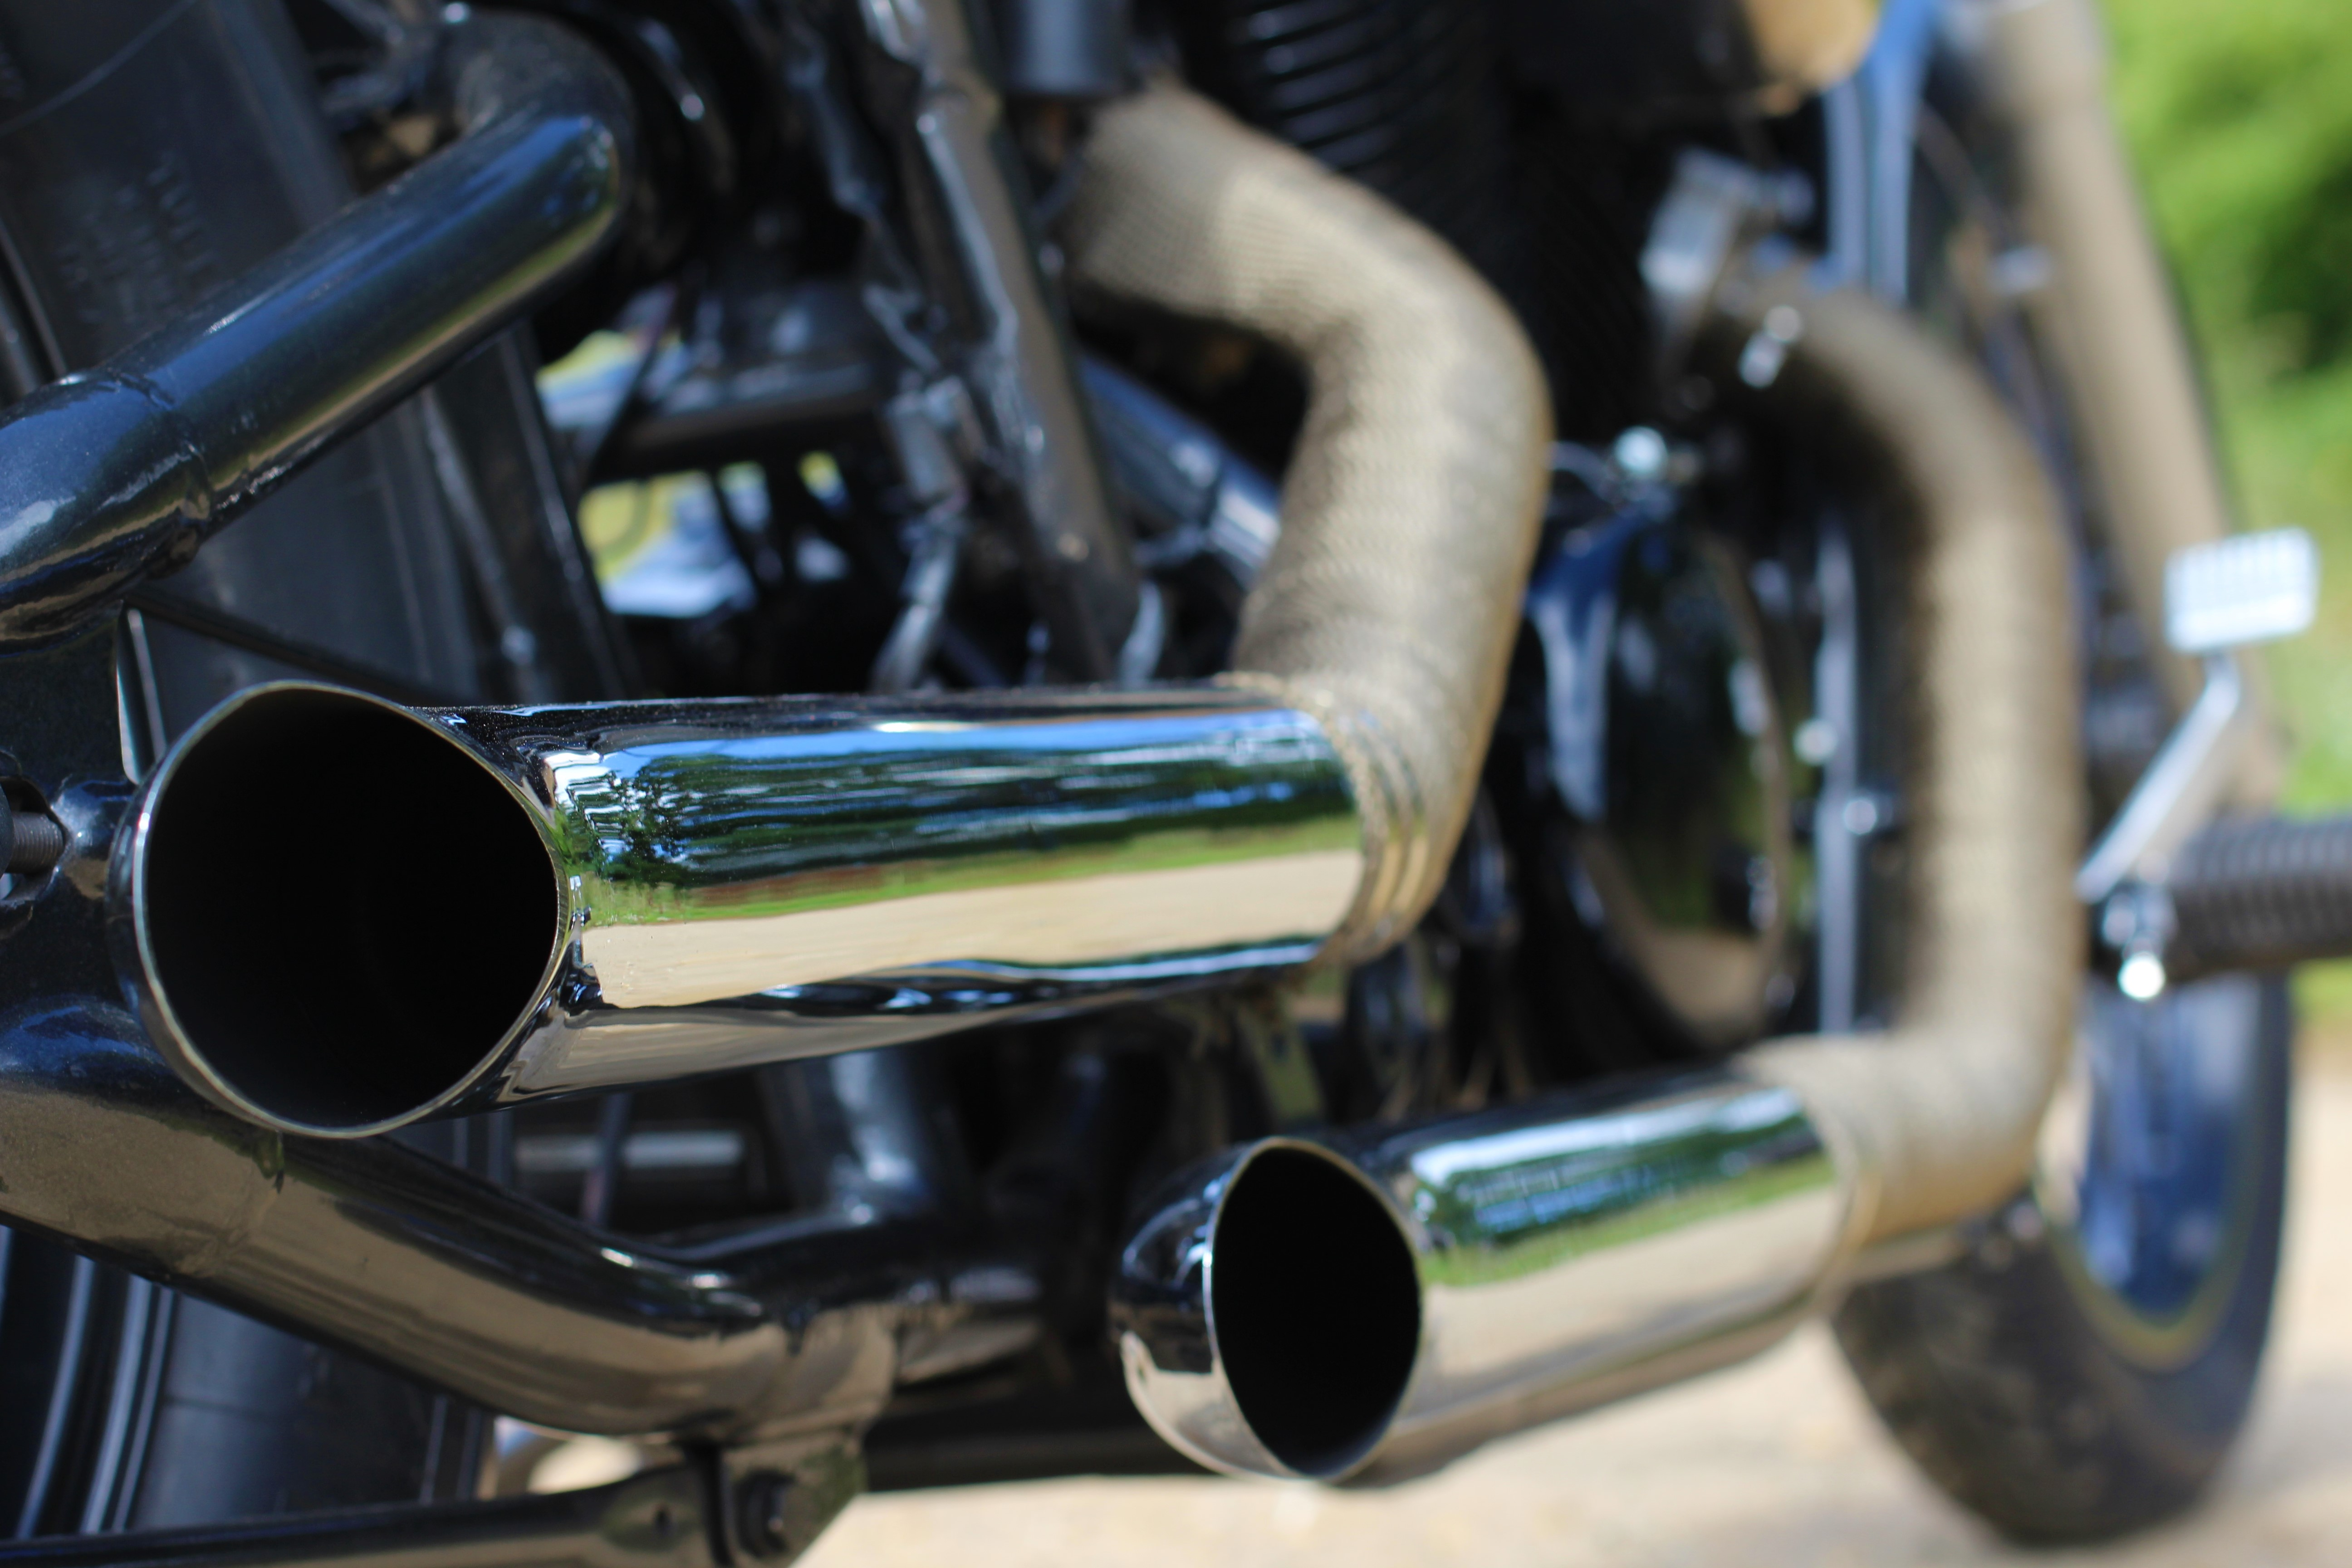 Honda VT 600 exhausts